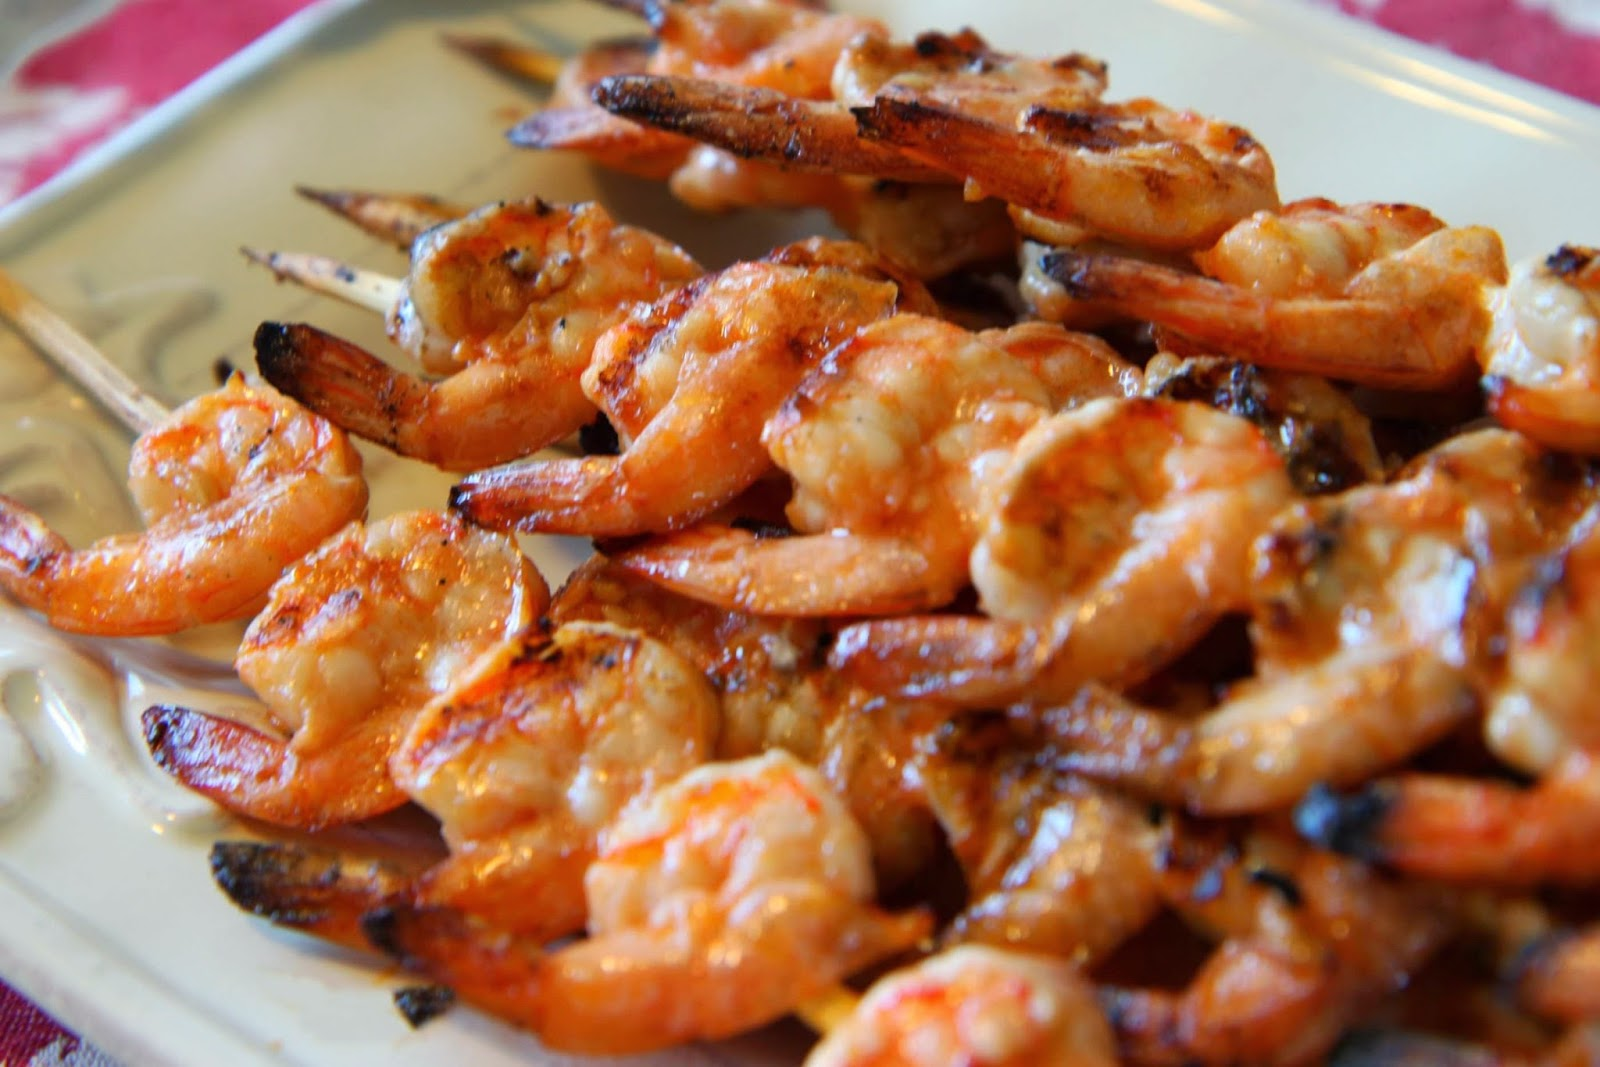 ... marinated grilled chicken marinated grilled shrimp gigaré lifestyle